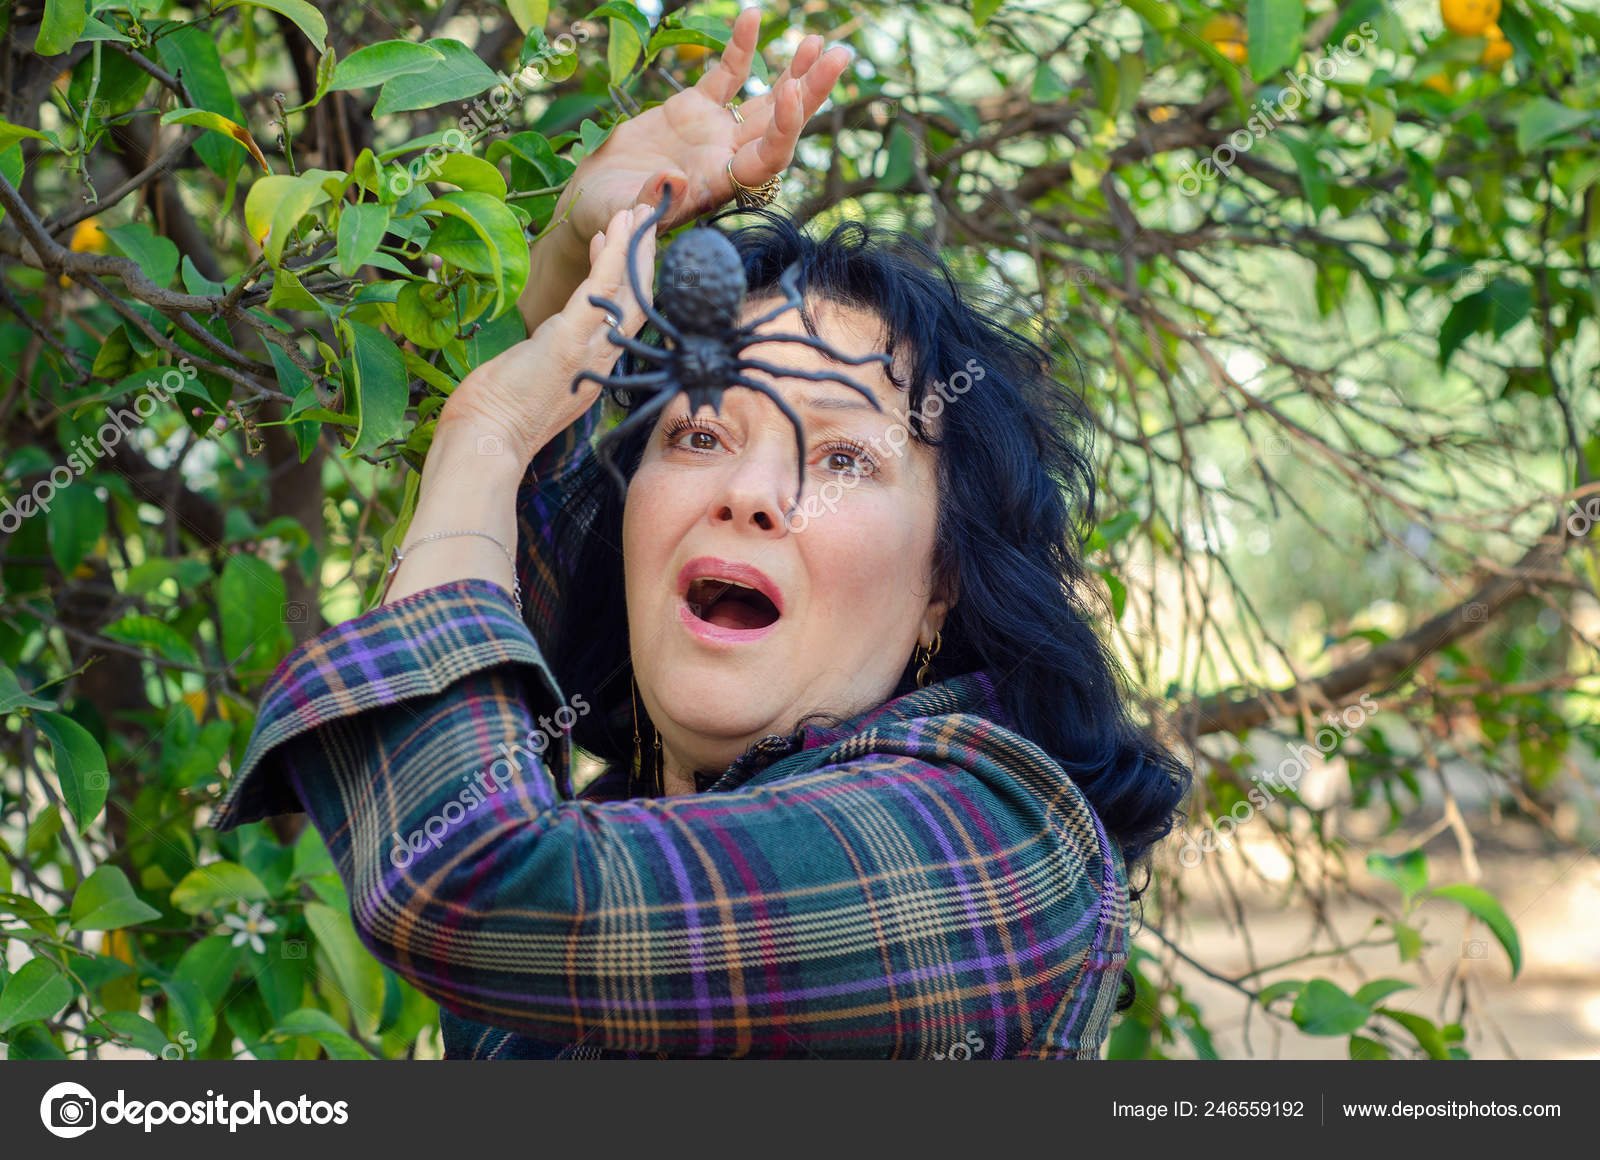 Woman meets a huge spider among green leaves of a tree